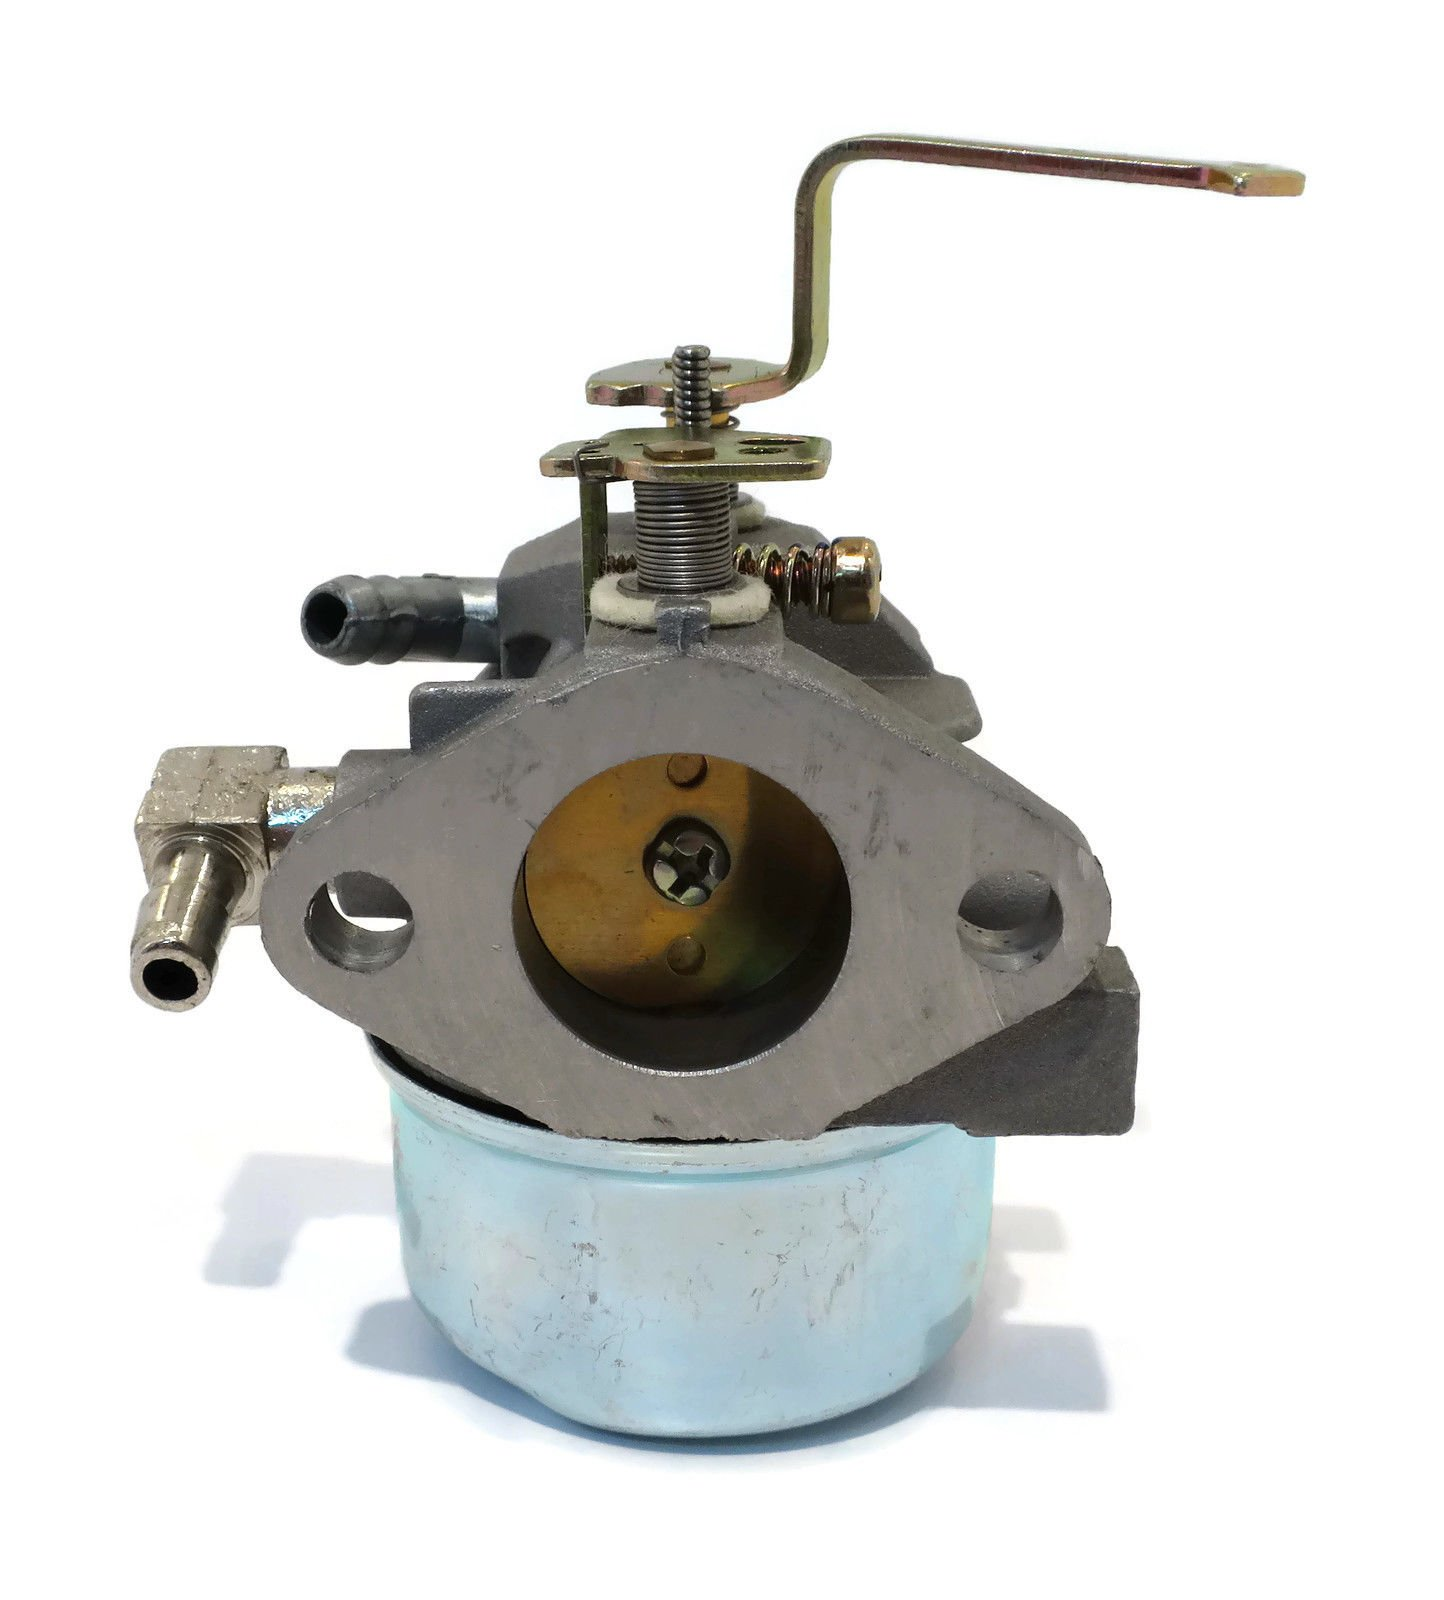 The ROP Shop Carburetor Carb for Tecumseh 640112 Stens 520-954, 056-318 HM80 HM90 HM100 Motor by The ROP Shop (Image #3)